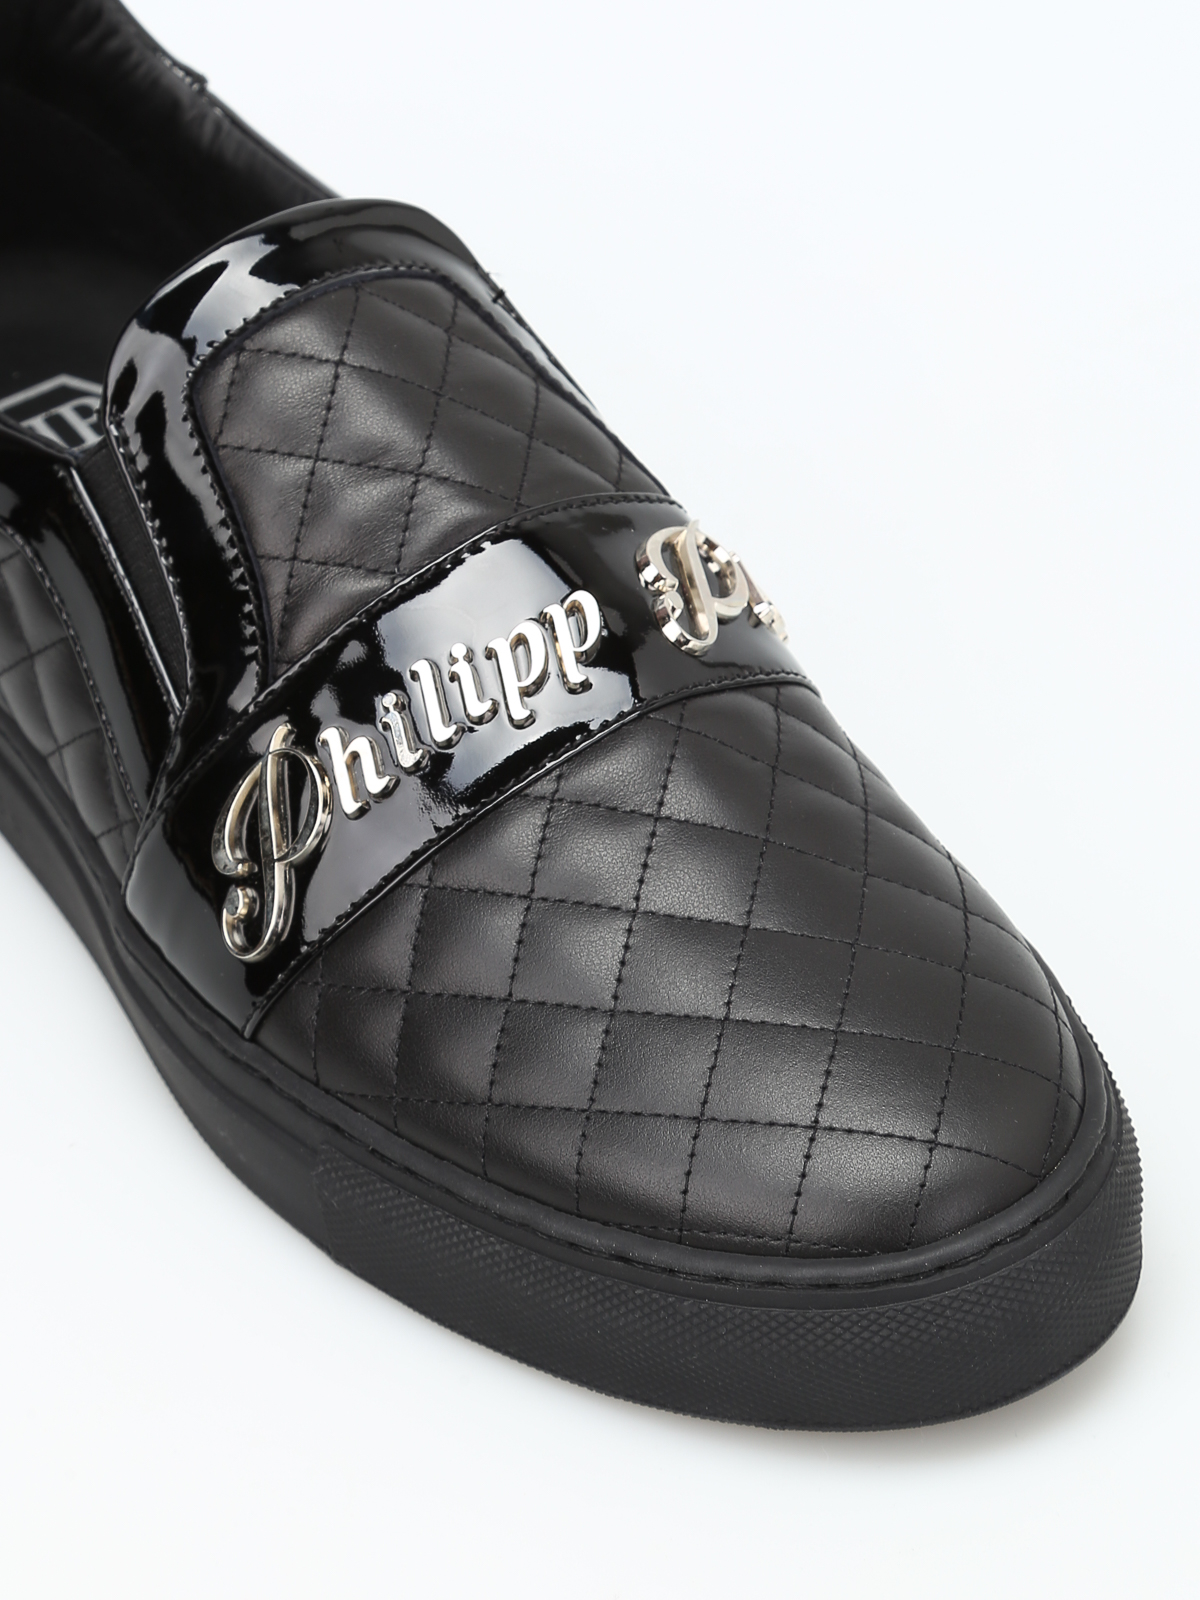 Fort smith quilted leather slip-ons